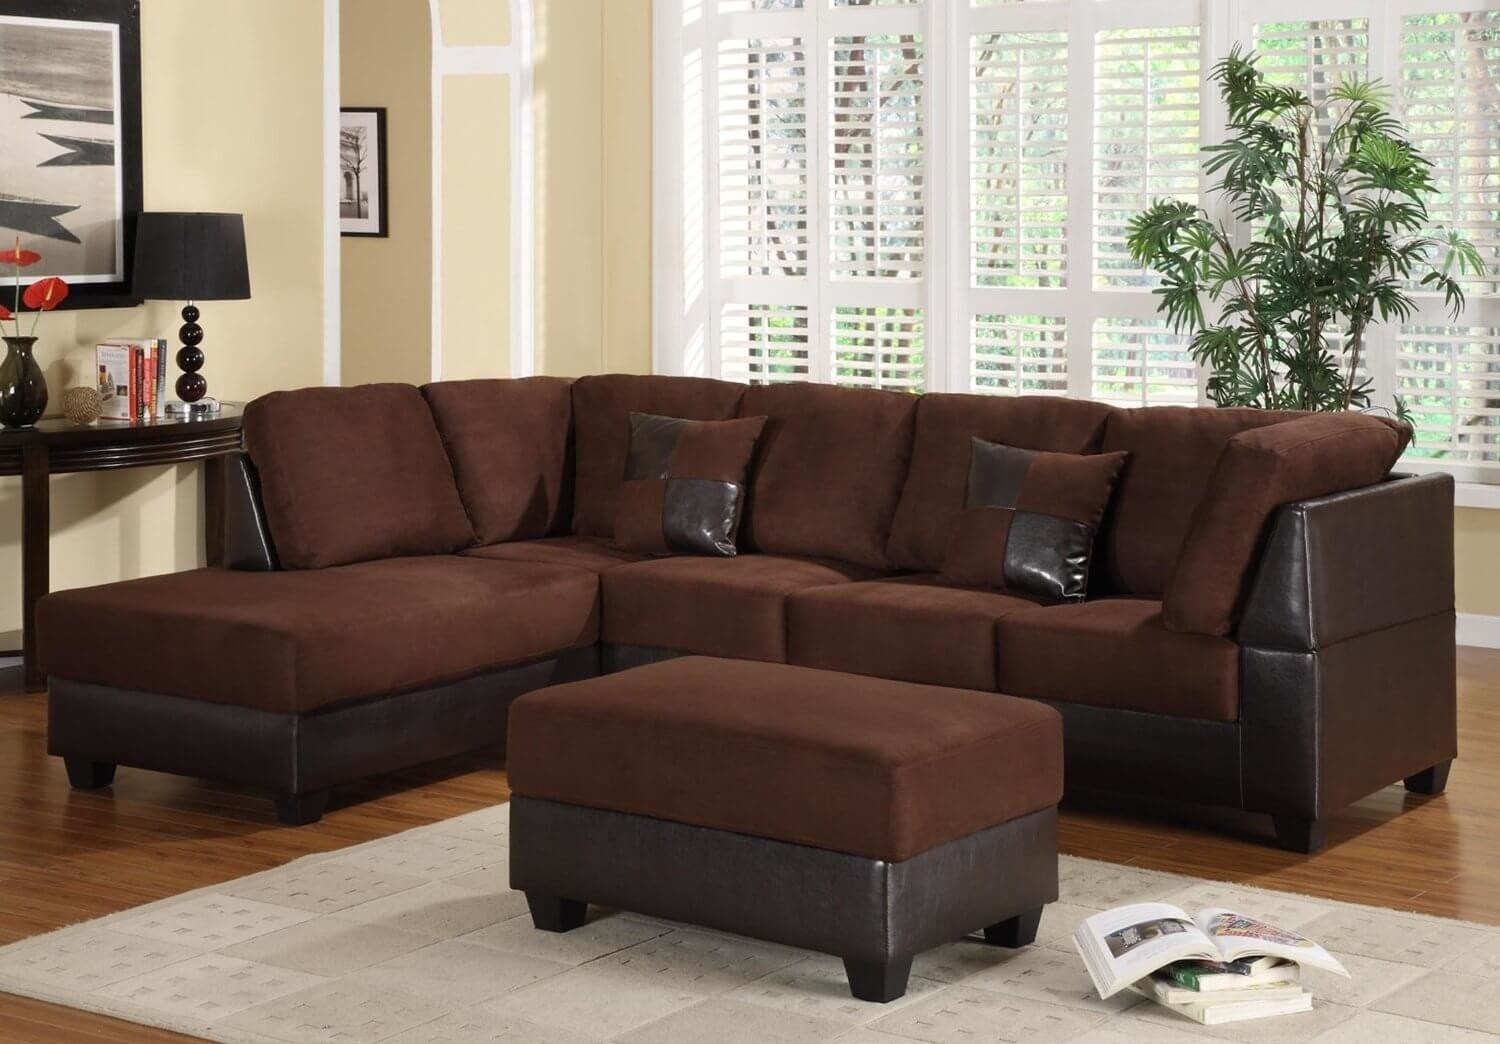 Furniture Stores Cheap Sectional Sofas Under 200 Gently Used in Sectional Sofas Under 200 (Image 9 of 10)